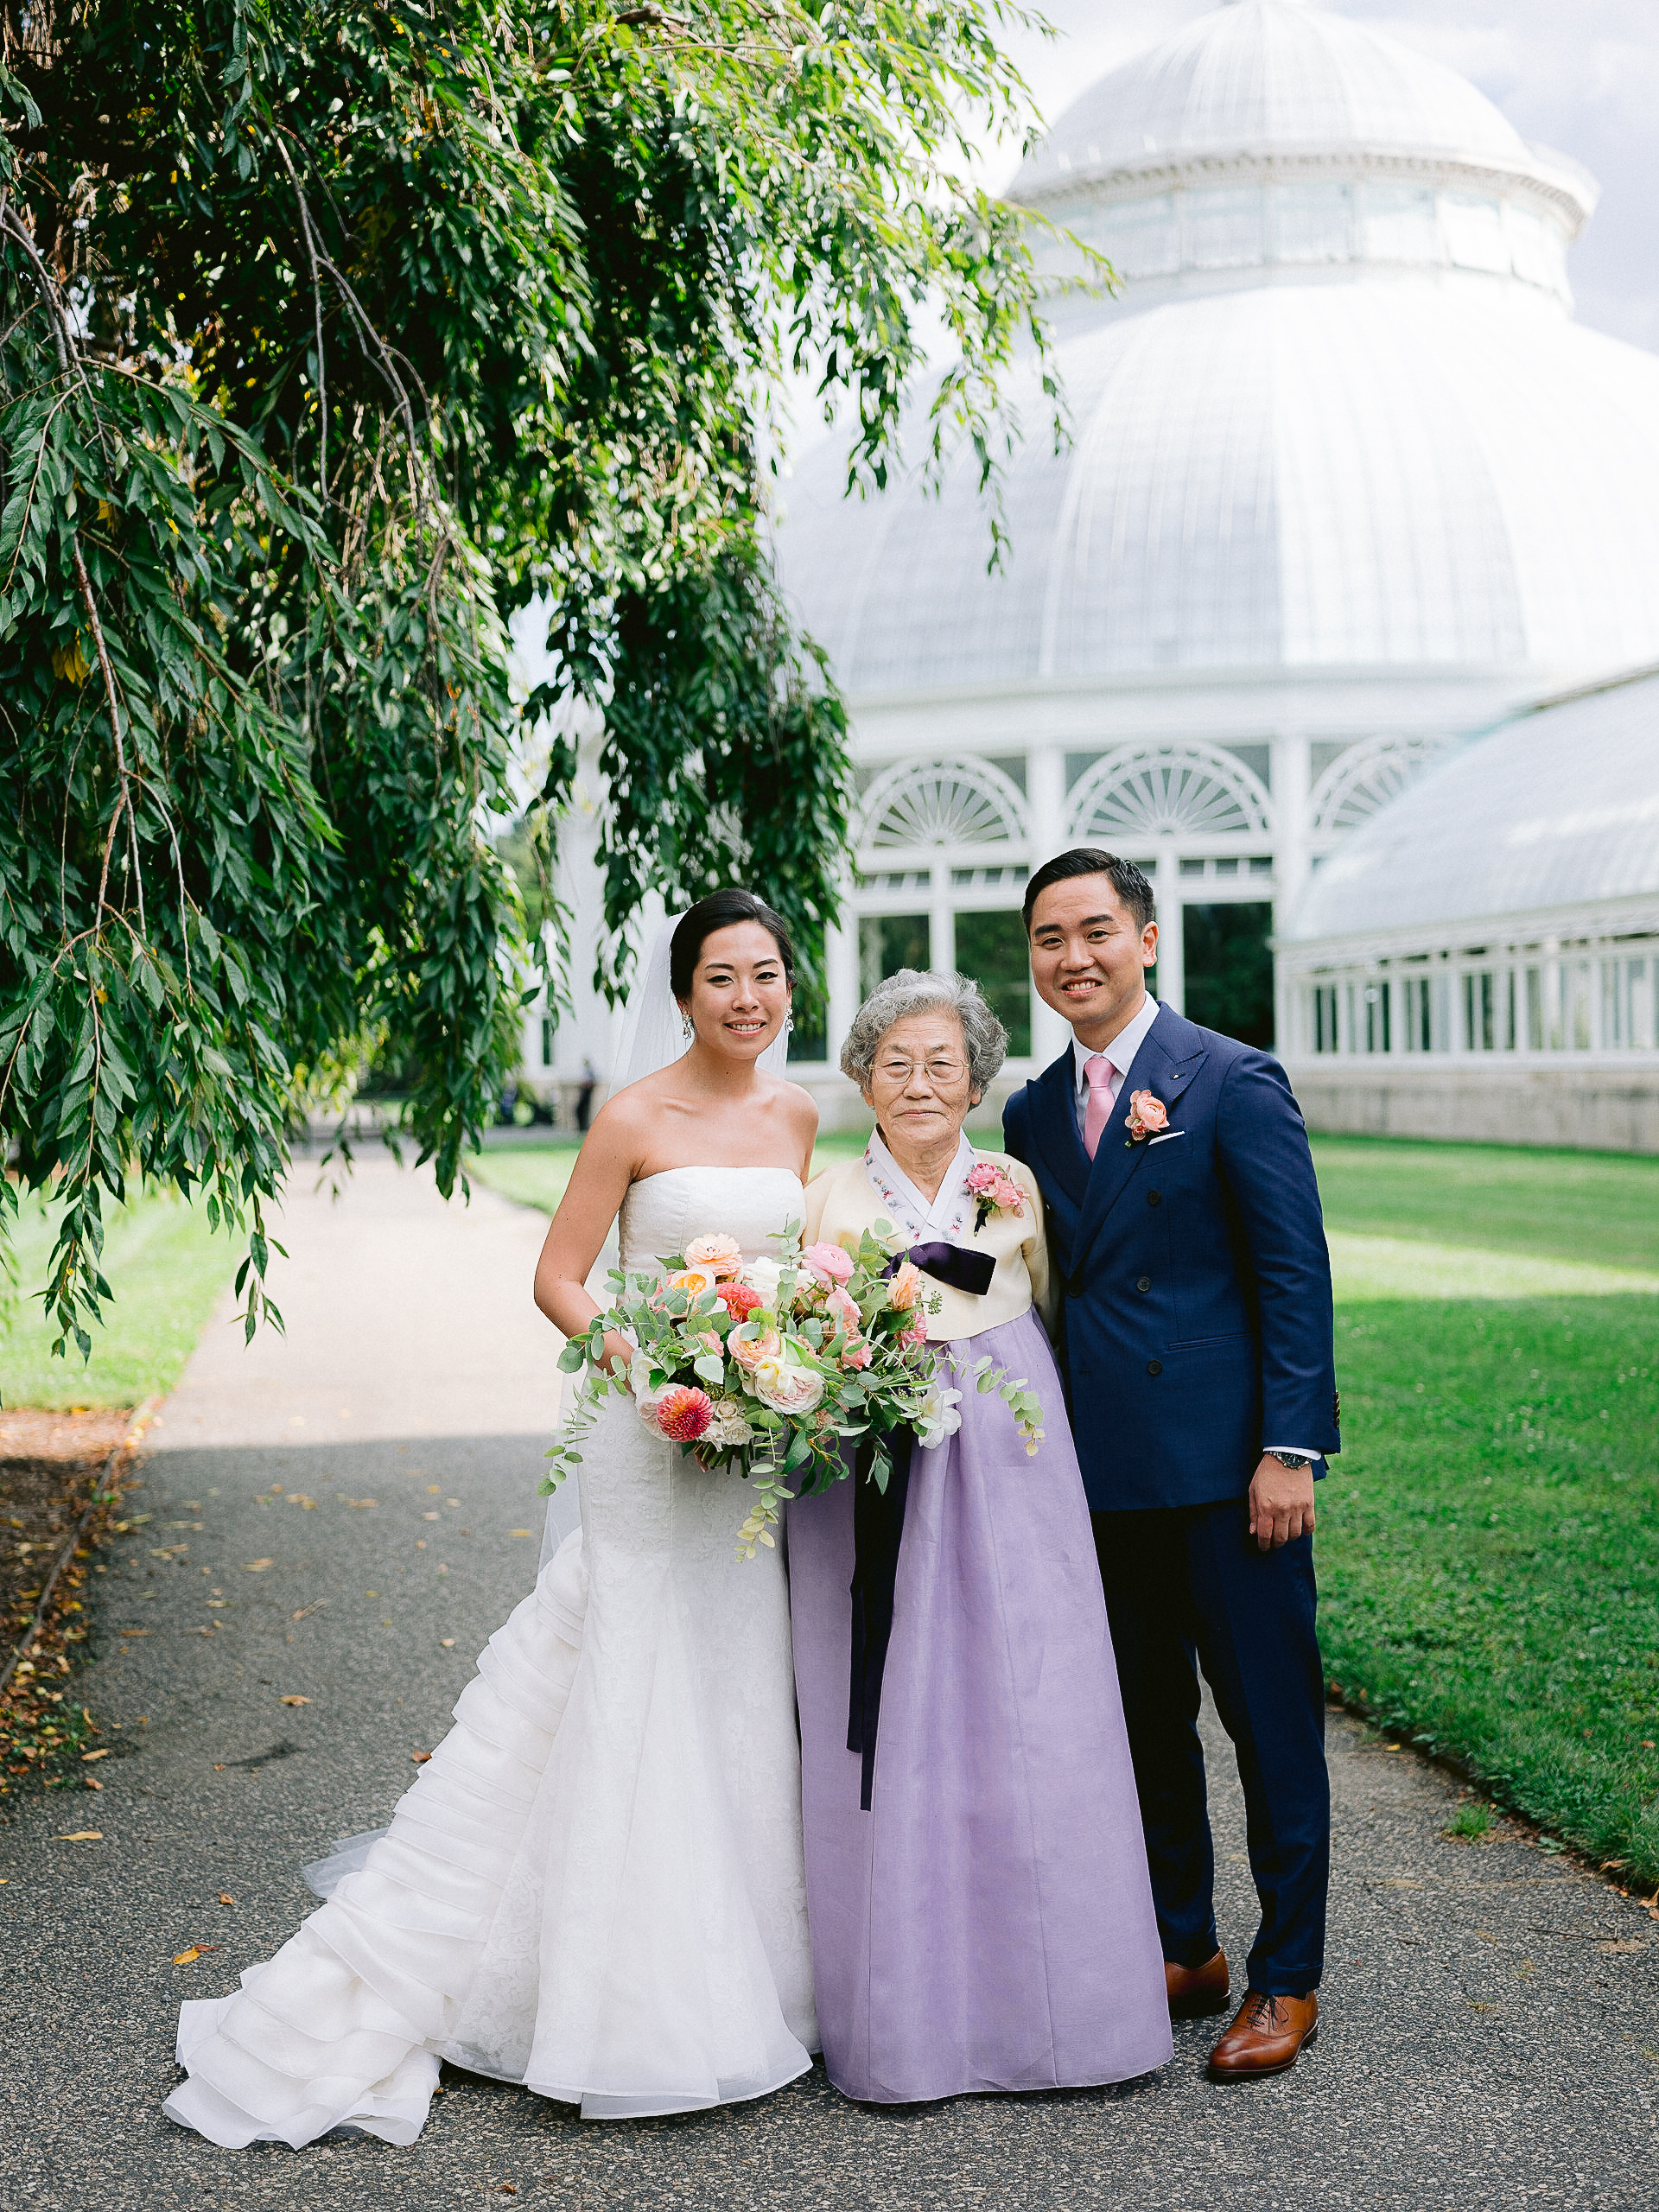 Best-New-York-Botanical-Gardens-Wedding-Photographer-61